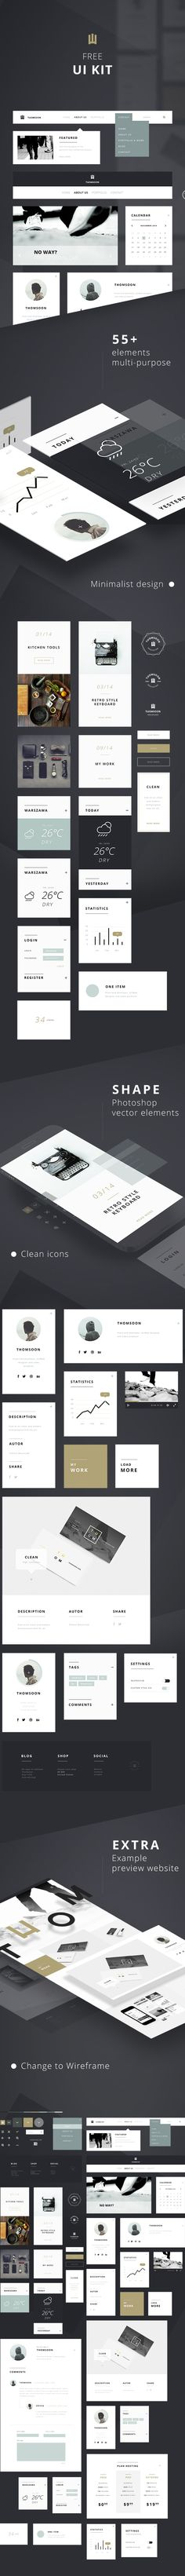 Clean White Multipurpose UI KIT for Download [PSD]